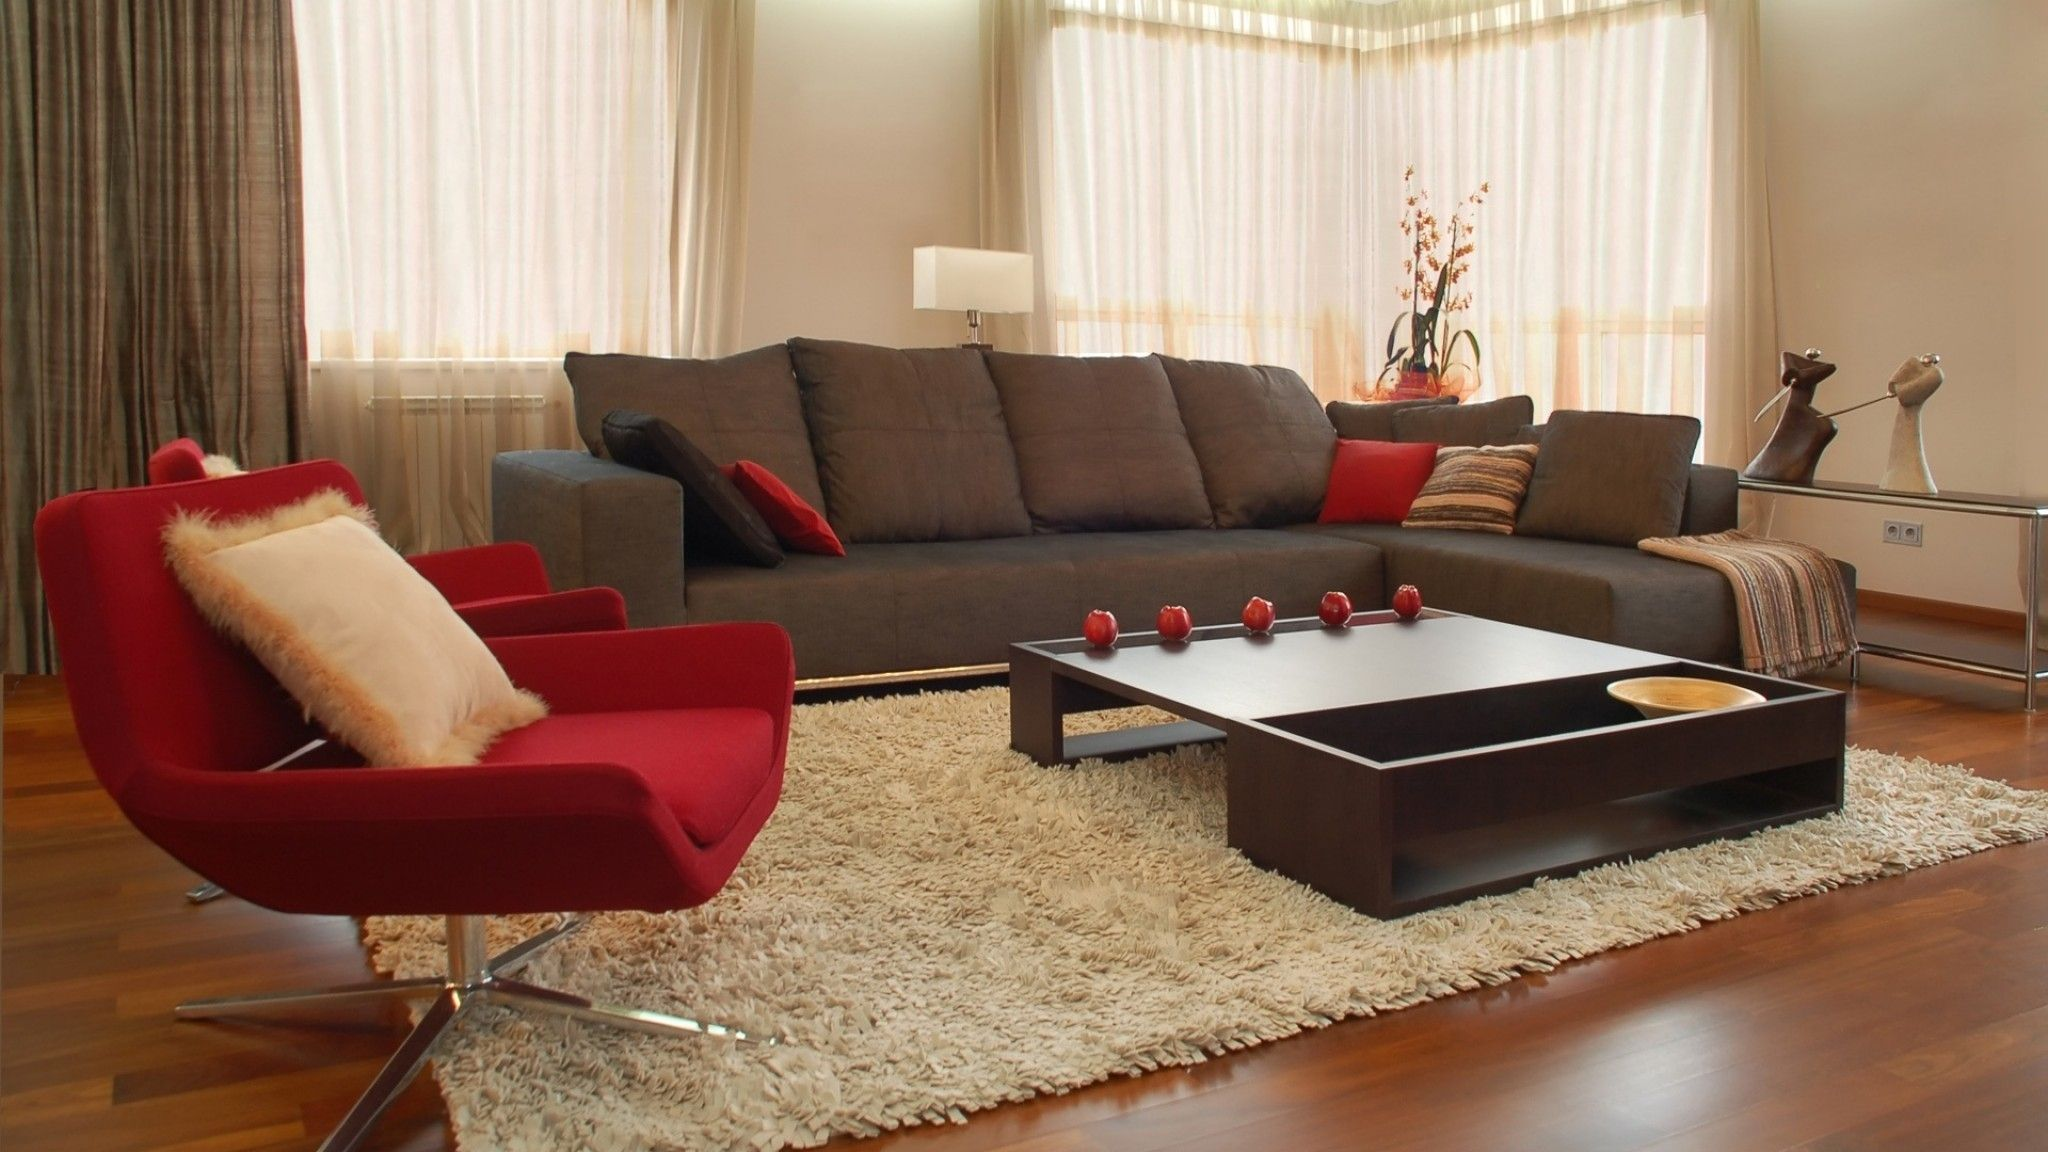 Bedroom Decorating Ideas Brown And Red